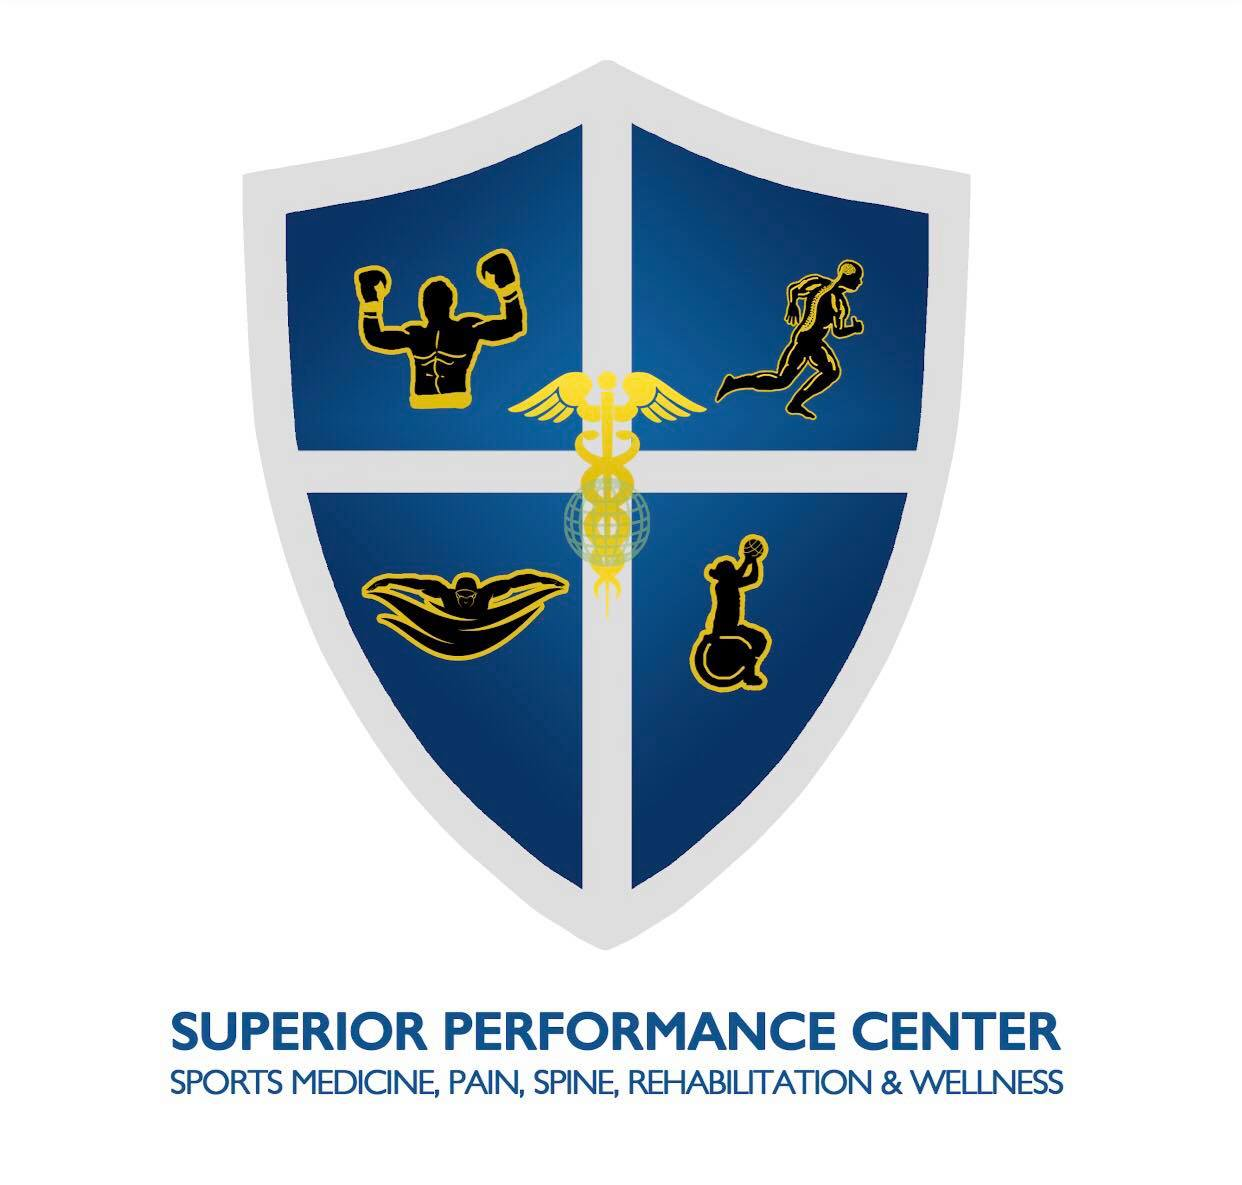 Superior Performance Center - Superior Performance Center is a physical medicine and rehabilitation, pain management and sports medicine clinic Greater Minneapolis Metro area.*Serge Pierre Charles, MD is recognized as a 2018 & 2019 Top Doctor in St Paul, MN.www.spcmedgroups.com